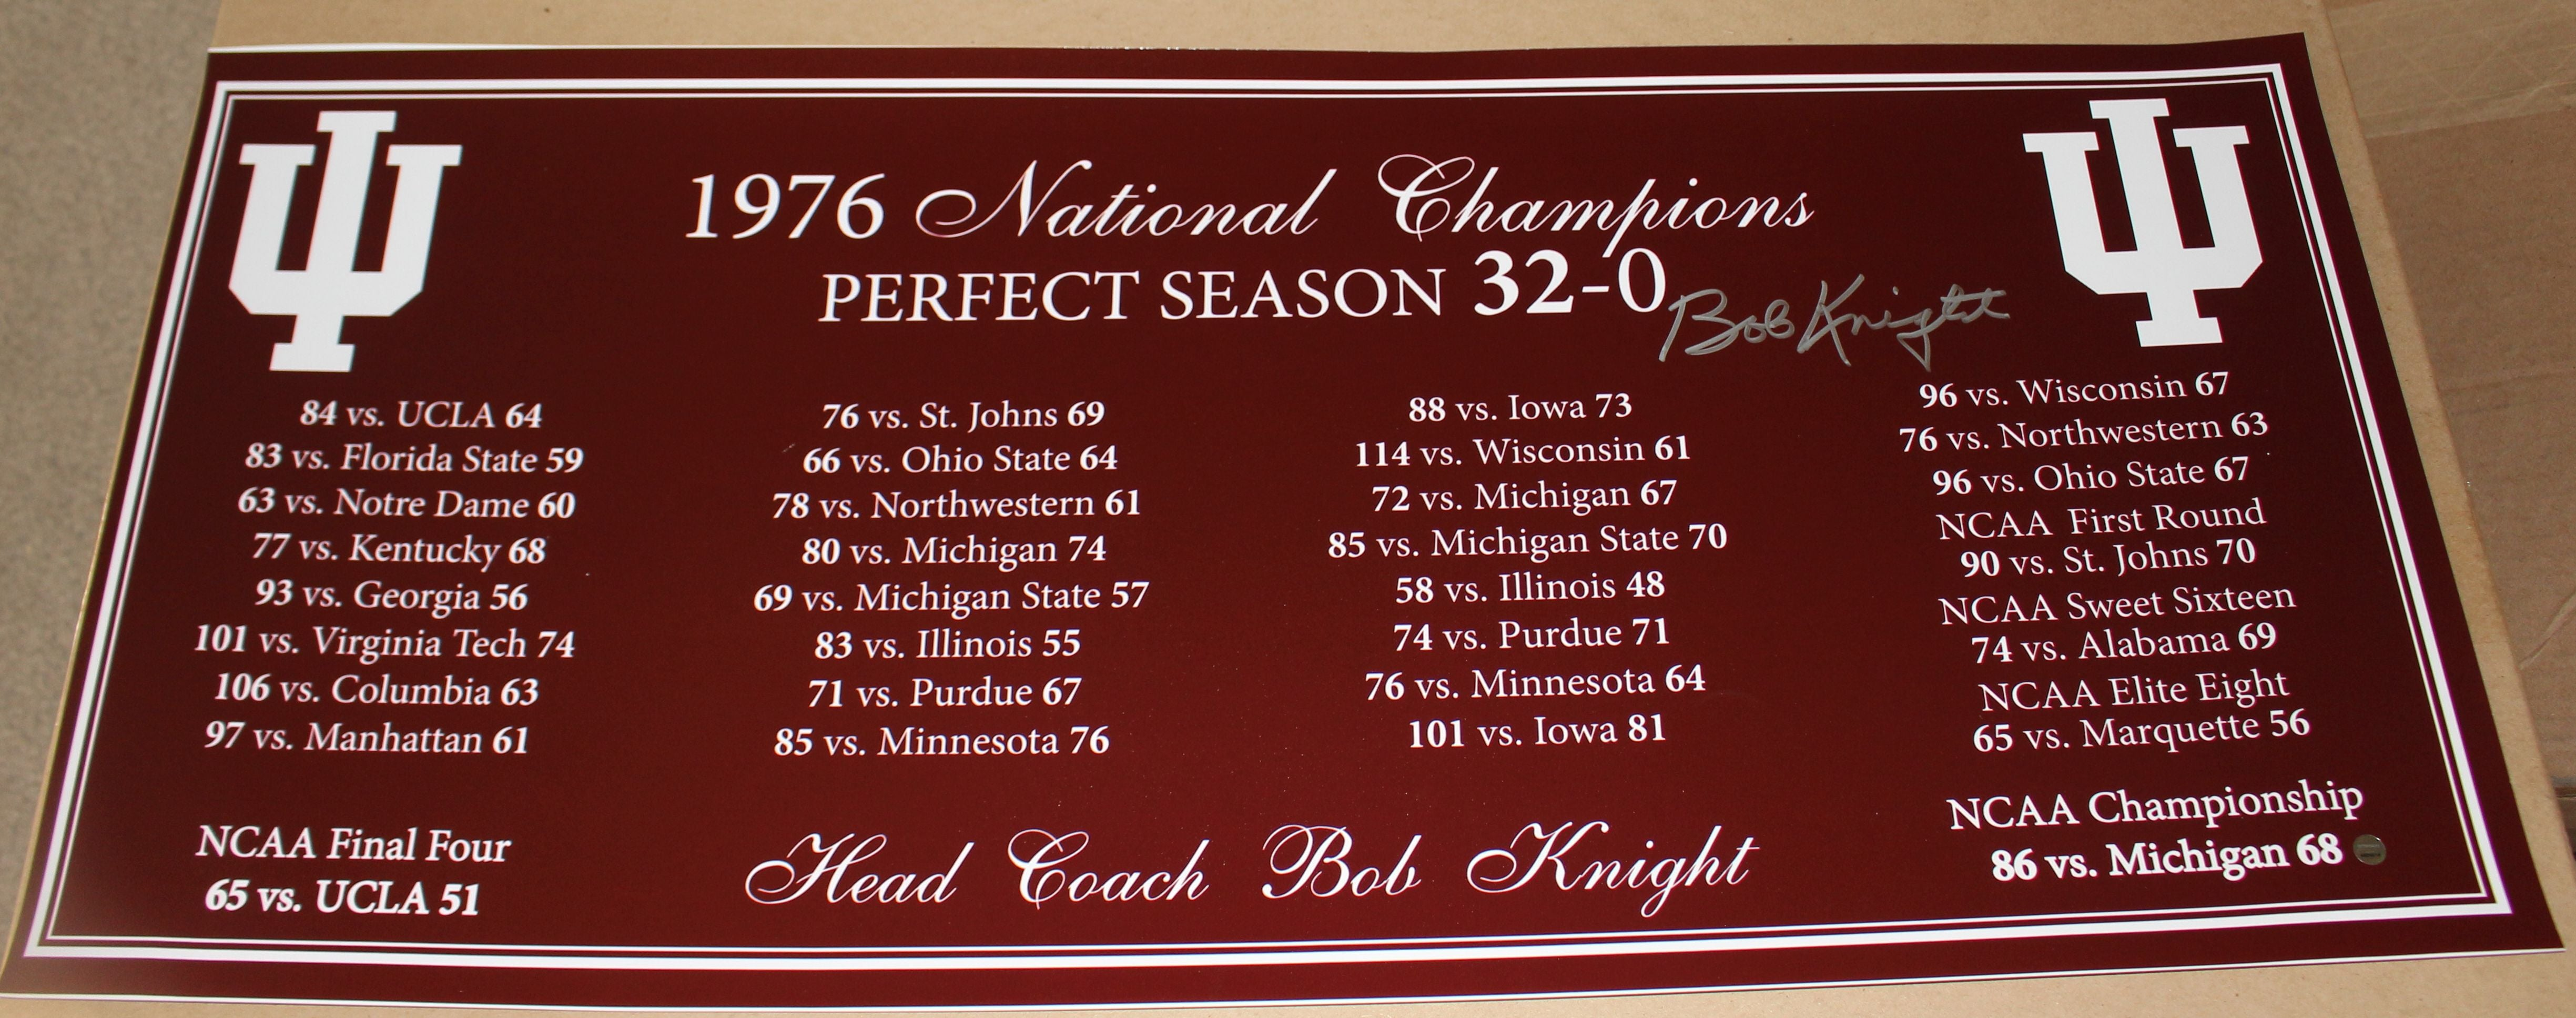 Bob Knight Autographed 1976 Indiana University Perfect Season Panoramic Photo - Vintage Indy Sports